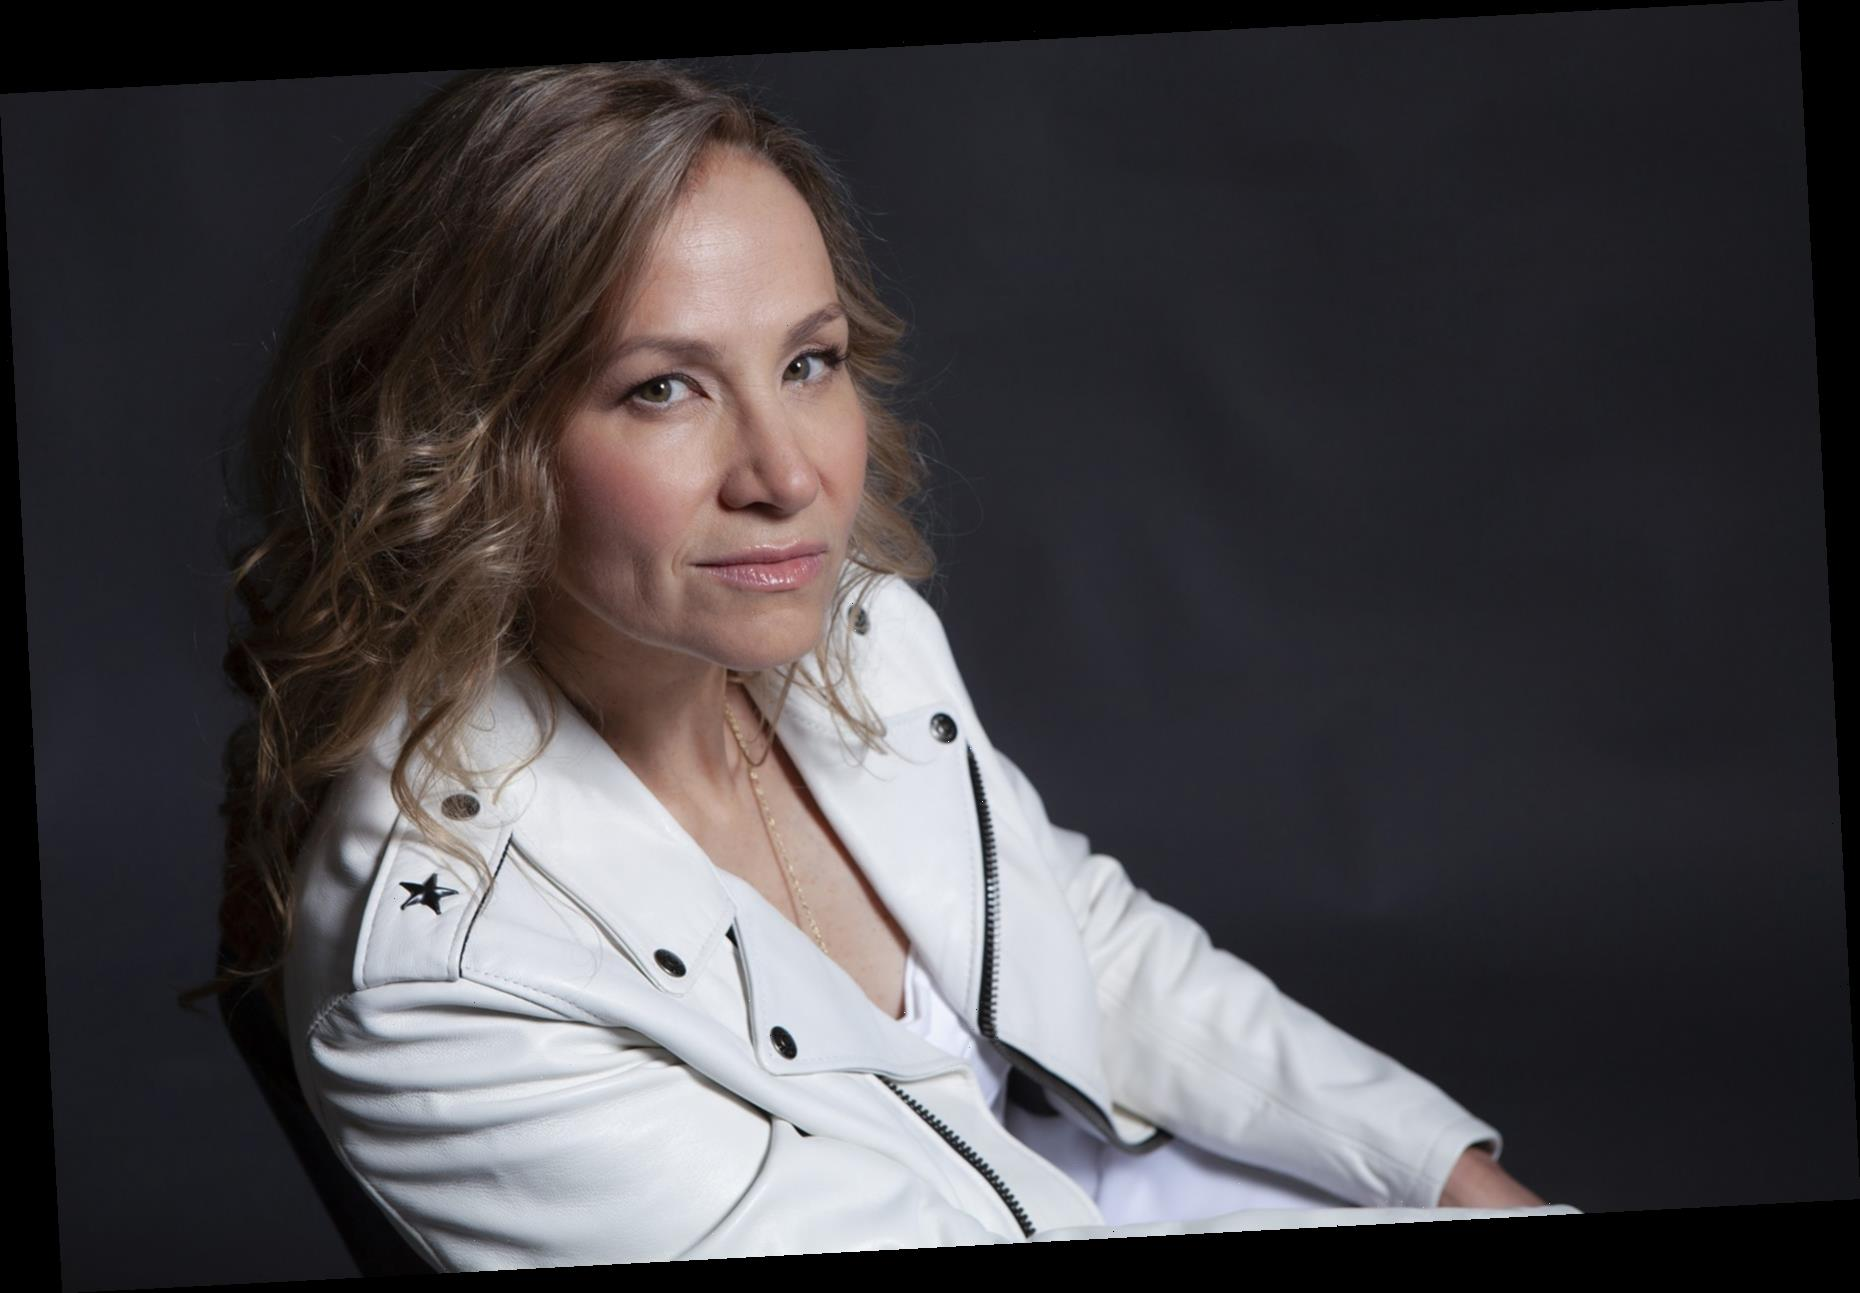 Joan Osborne Is 'Sick of All the Corruption' in Timely New Video 'Hands Off'